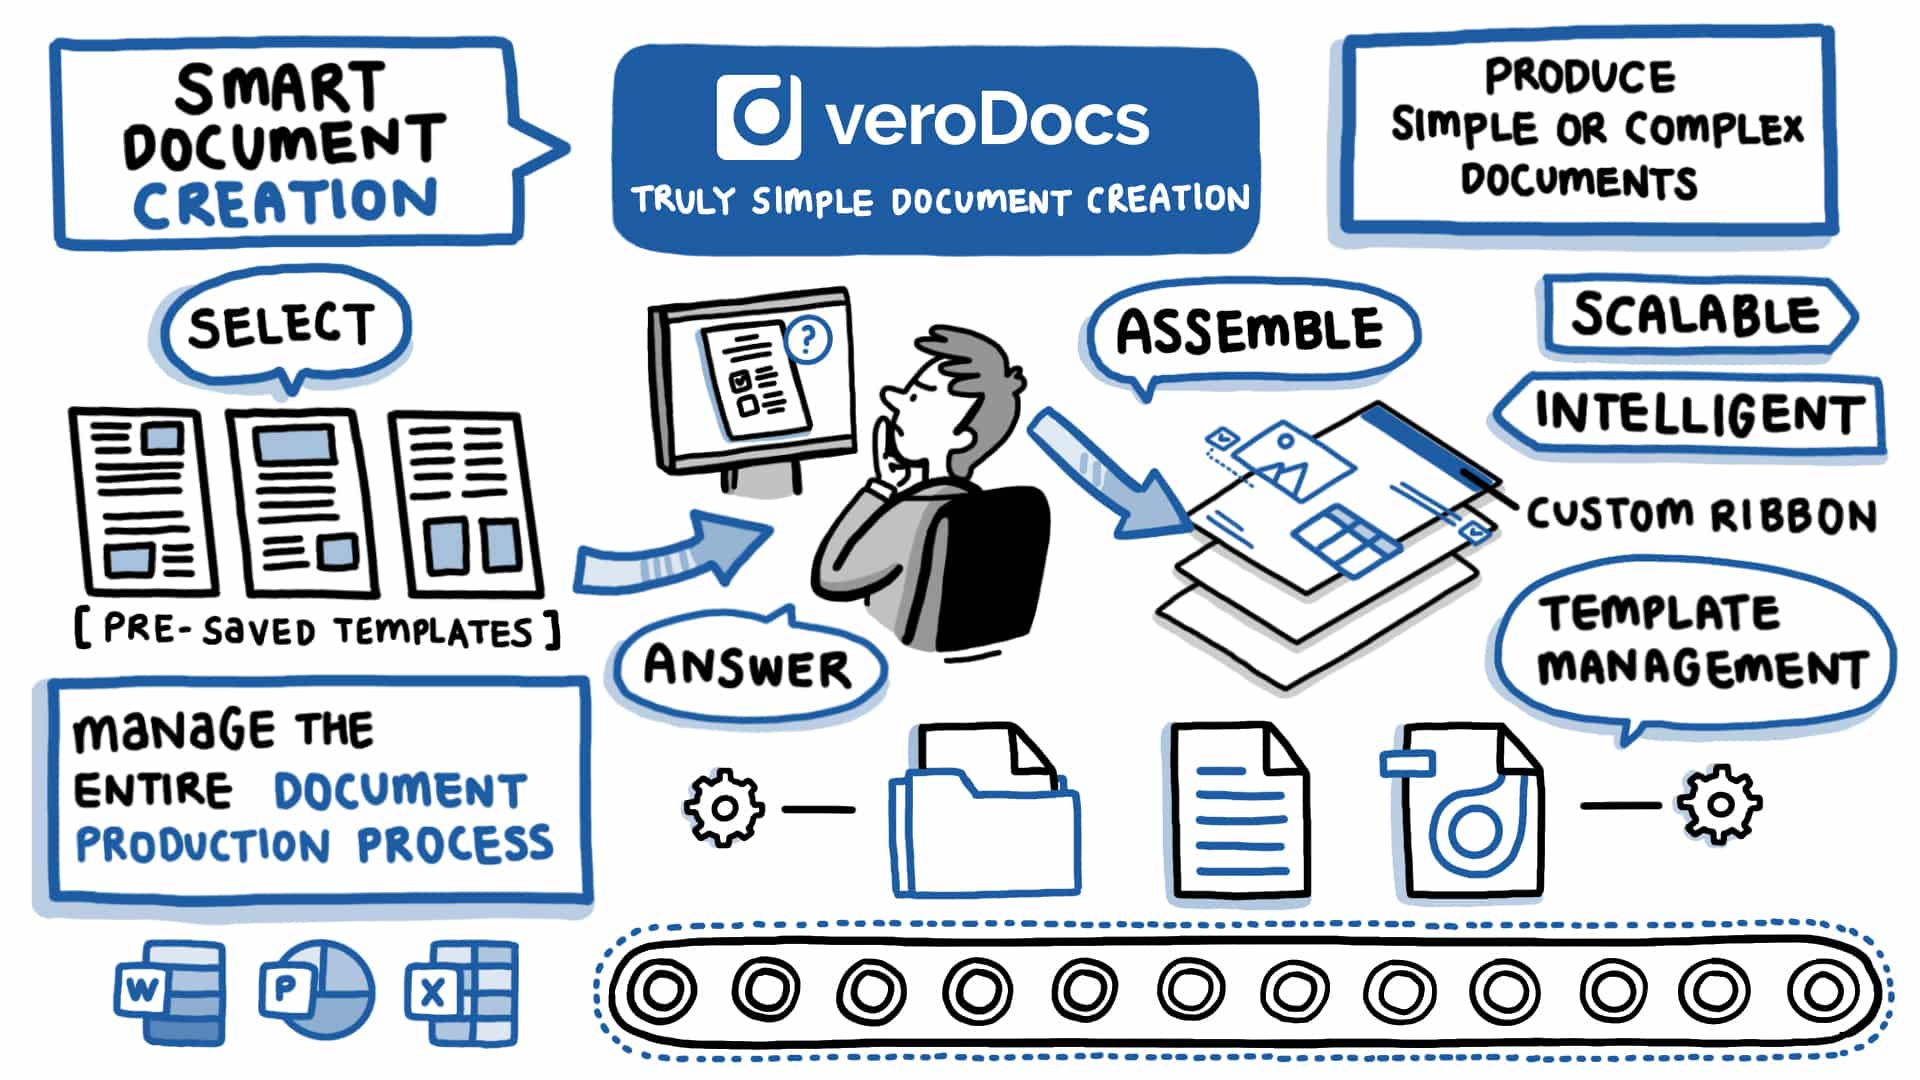 document-assembly-document-creation-veroDocs